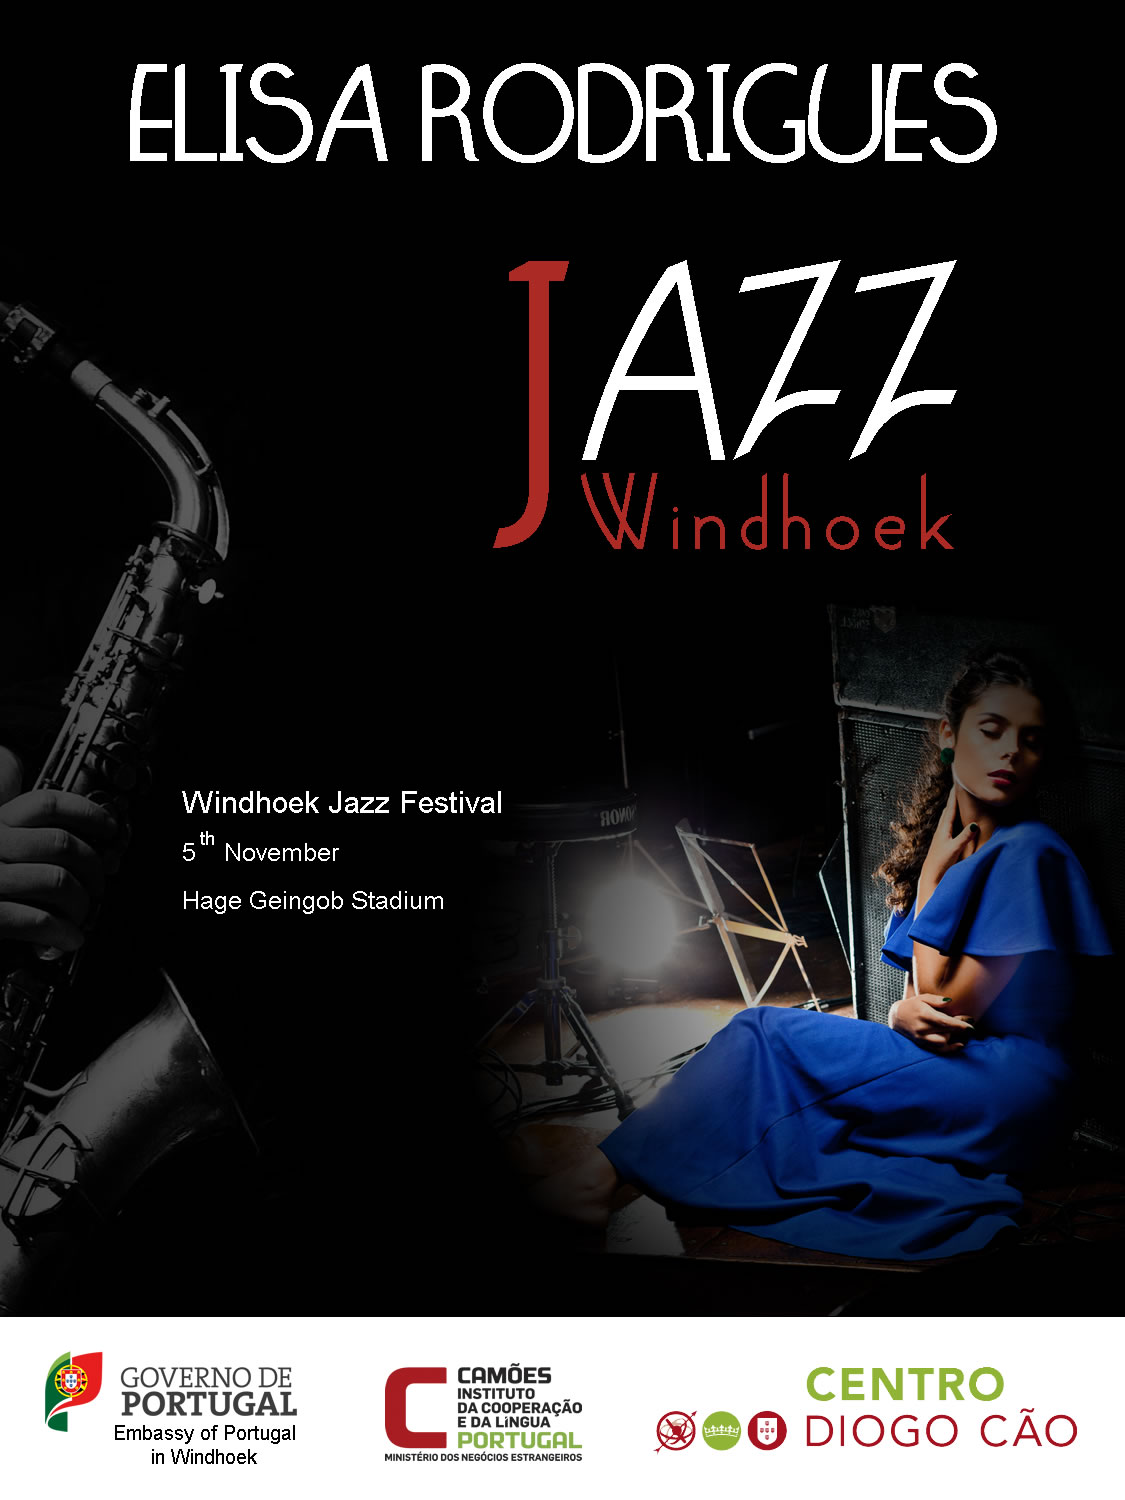 Elisa Rodrigues Jazz windhoek